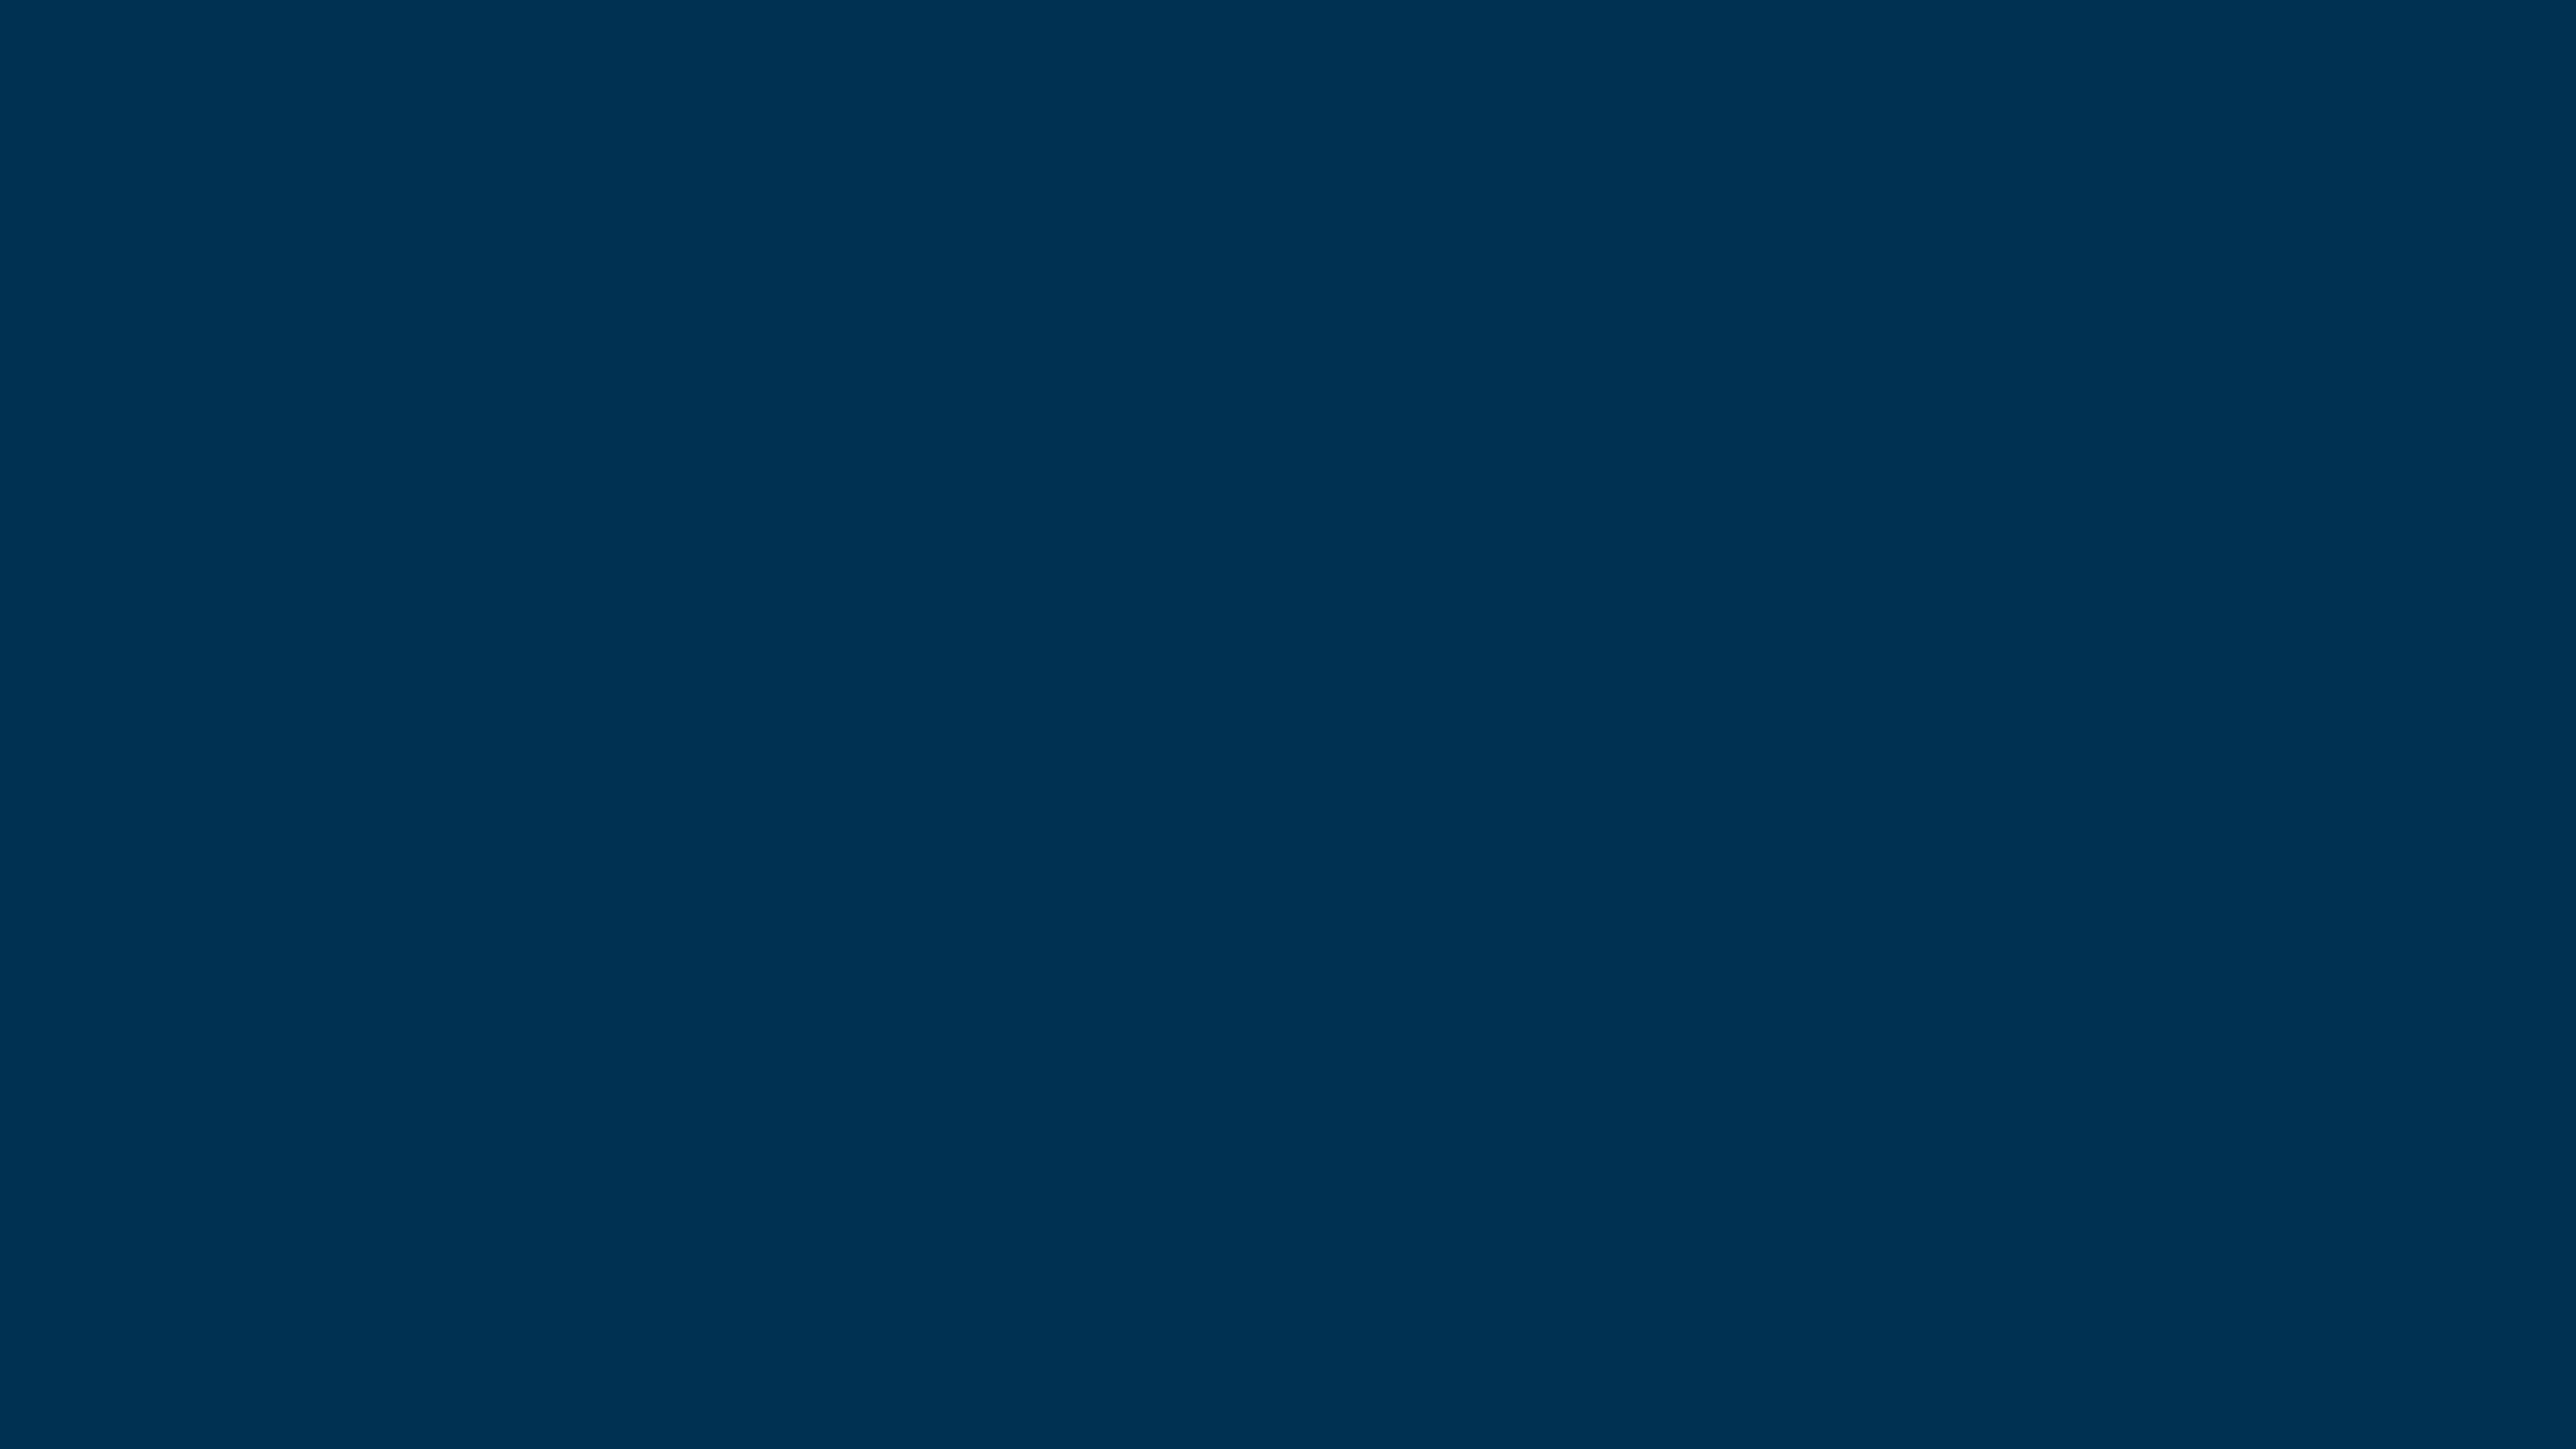 3840x2160 Prussian Blue Solid Color Background